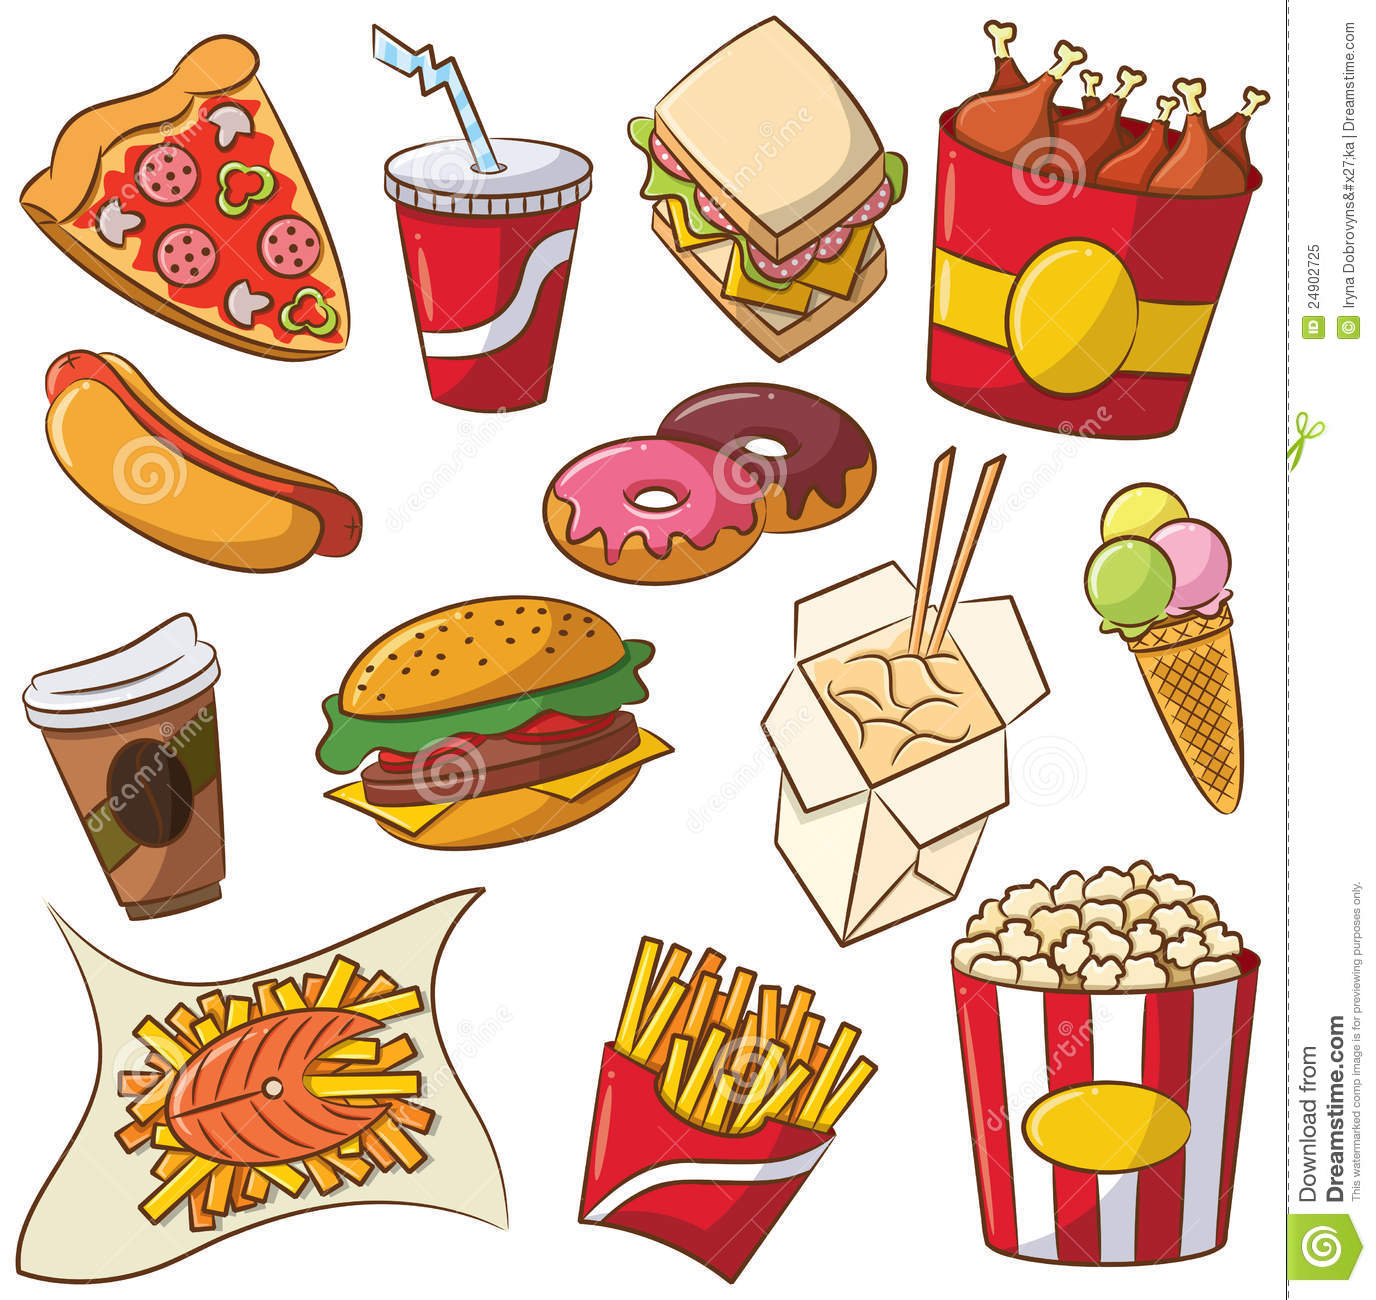 20 food clipart clipart transparent stock Fast food clip art - ClipartFest clipart transparent stock